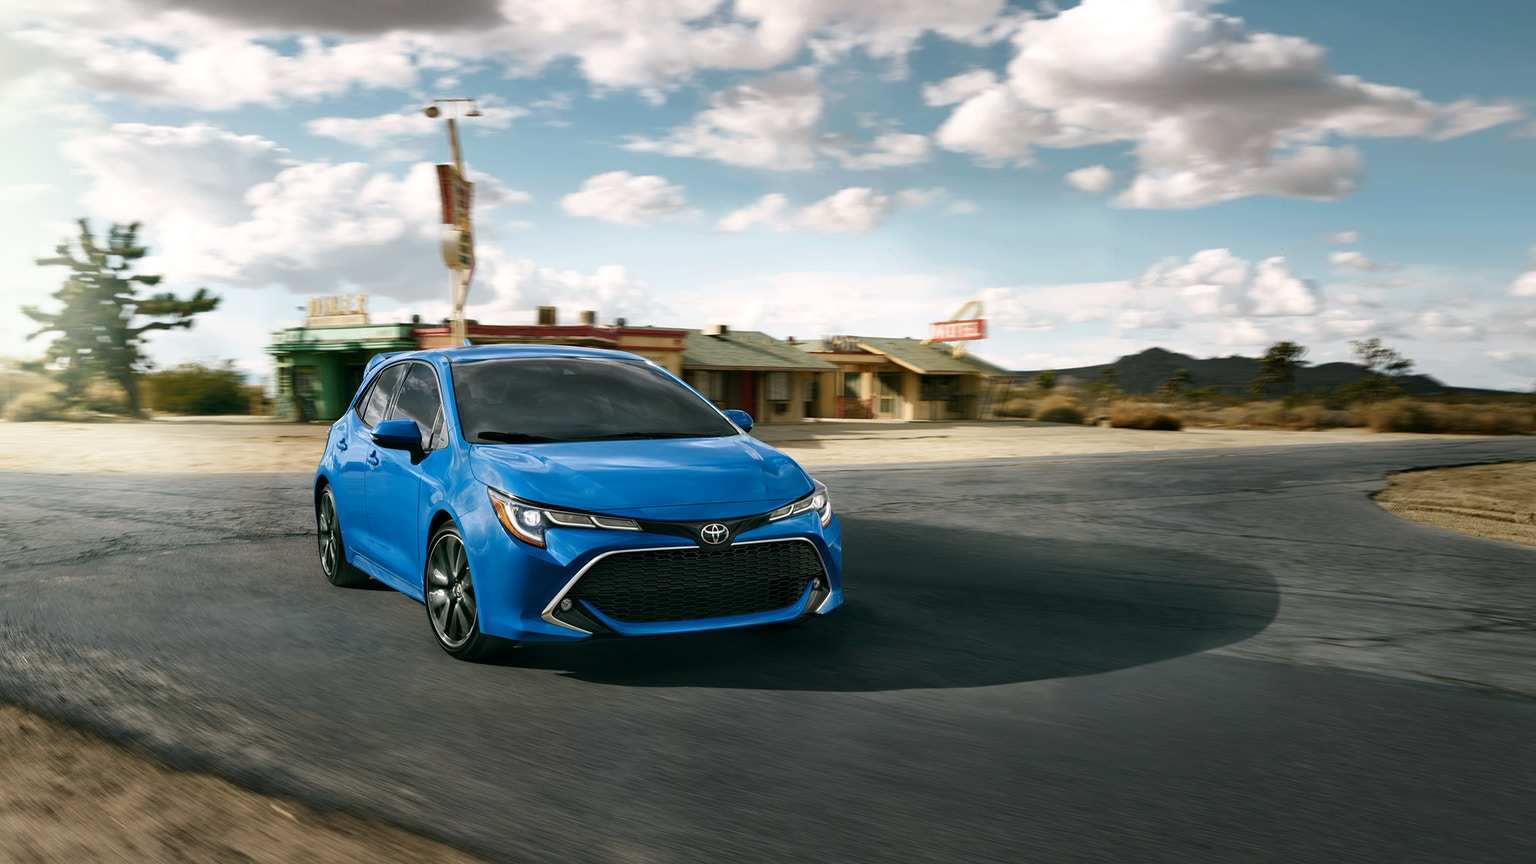 83 Best Review The Price Of 2019 Toyota Corolla Hatchback Picture New Review by The Price Of 2019 Toyota Corolla Hatchback Picture